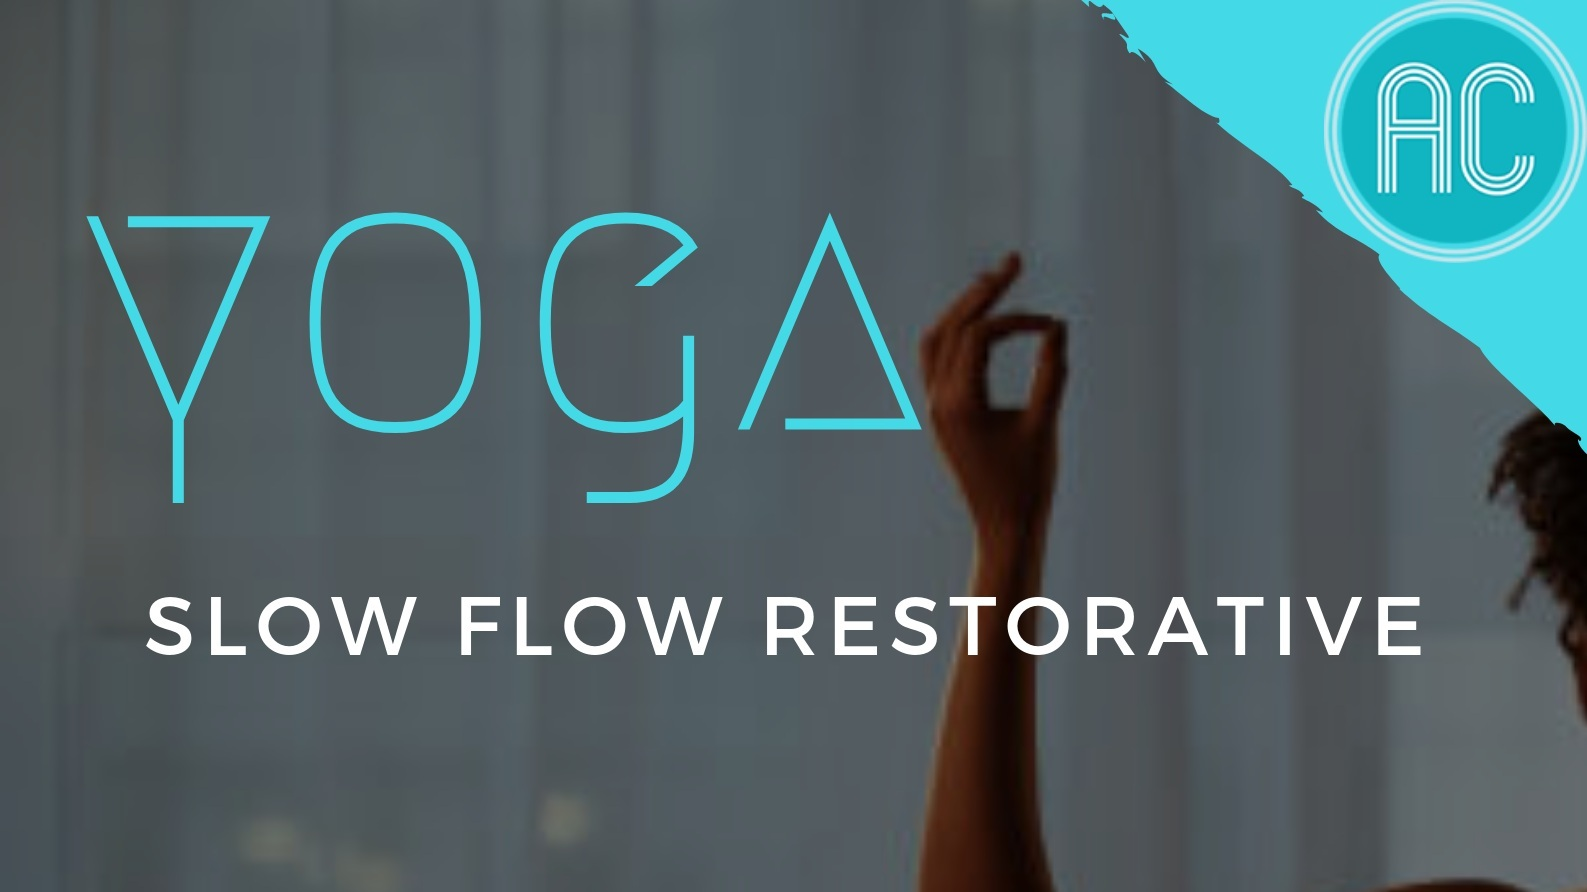 May 16, 2019 - June 20, 2019 Thursdays, 5:30 PM - 6:30 PM - Teacher: Stephanie Hicks - Pronouns: she/her/hersOpen, unwind and turn down in this one hour slow-flow restorative yoga class. We'll focus on cultivating deep, full breath and strong alignment while moving at a slow, steady pace. This class is for those who want explore the relationship between strength and flexibility, boundaries and expansiveness. All levels welcome!$120 - $180 for the 6-week series. No one will be turned away due to lack of funds. To register, bit.ly/amplifyyoga